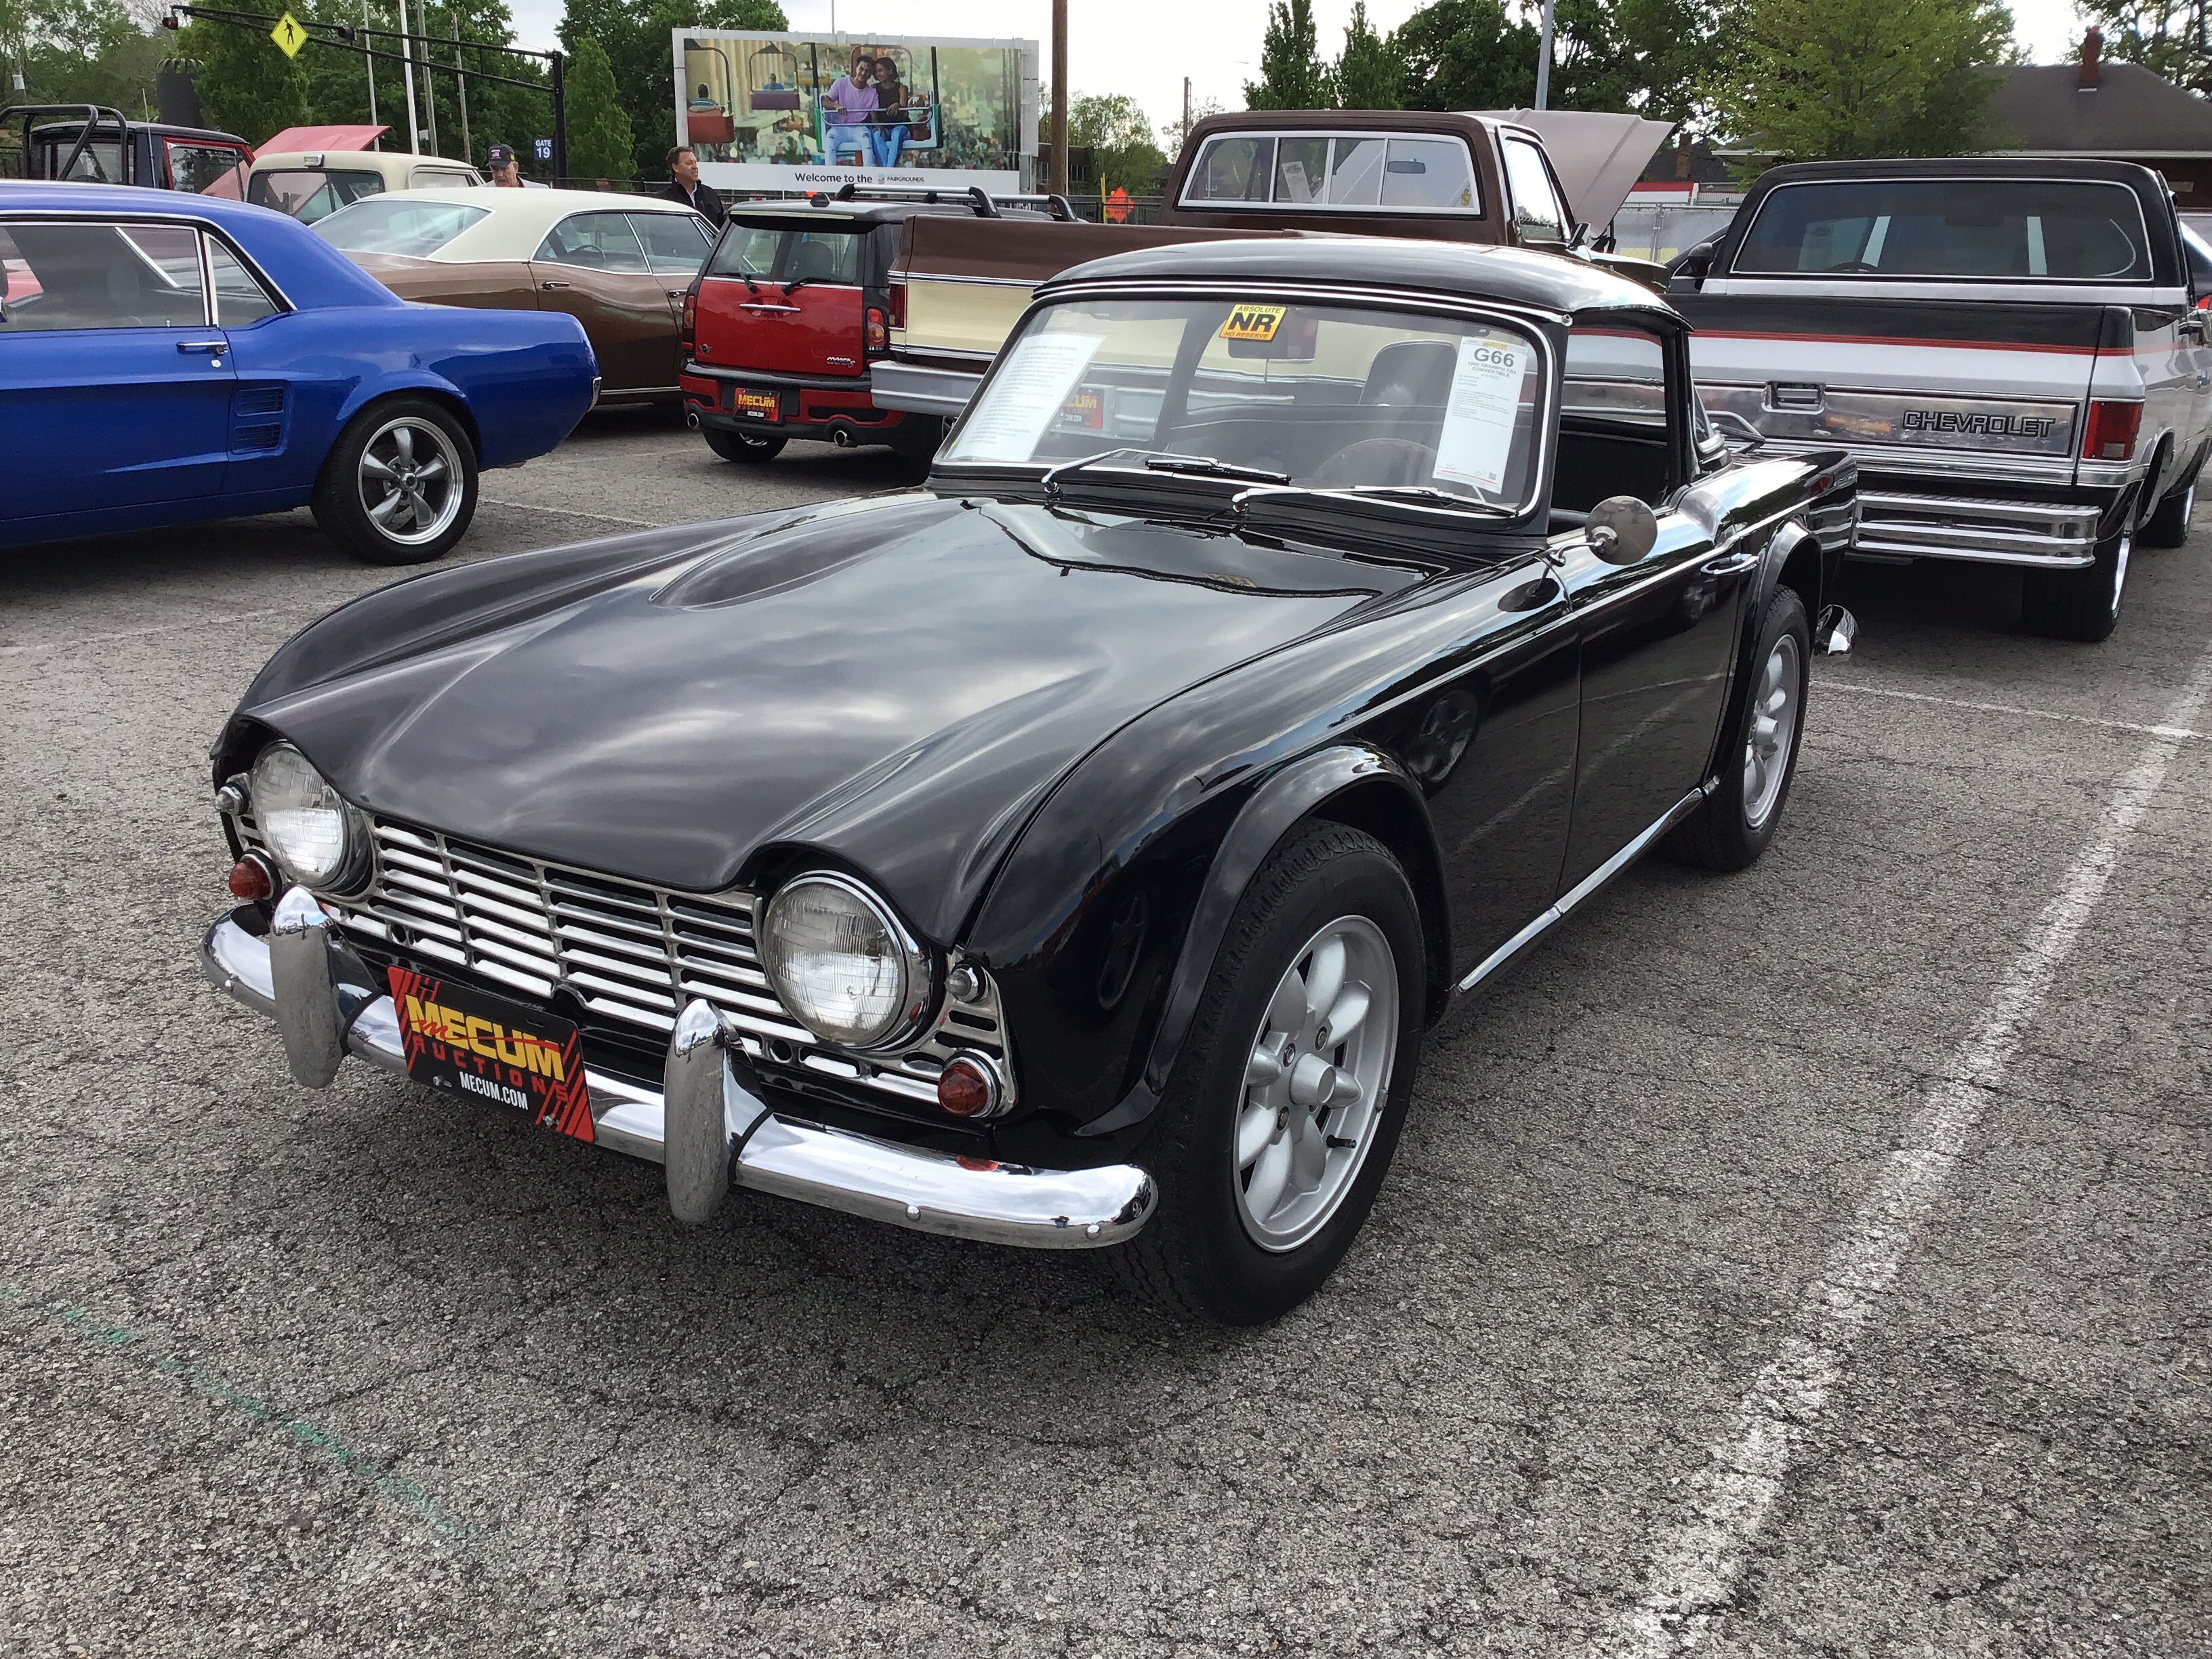 1964 Triumph Tr4 Values Hagerty Valuation Tool